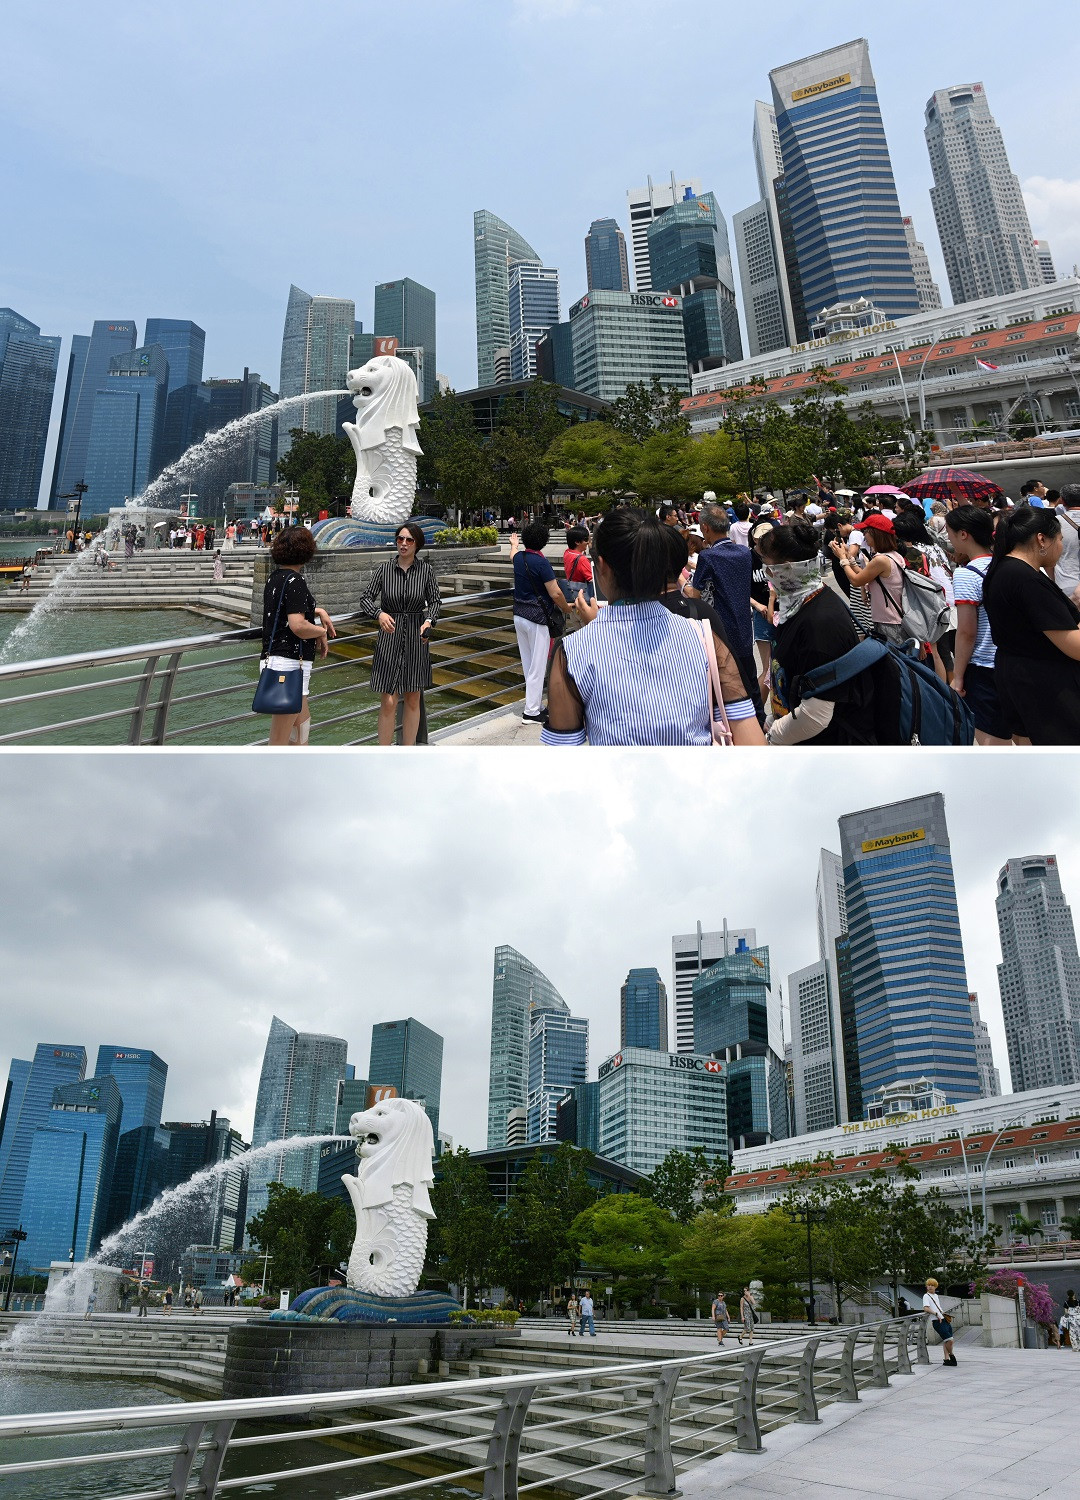 This combination photo created on March 6, 2020 shows visitors at the Merlion park in Singapore on August 13, 2019 (top) and on March 6, 2020.